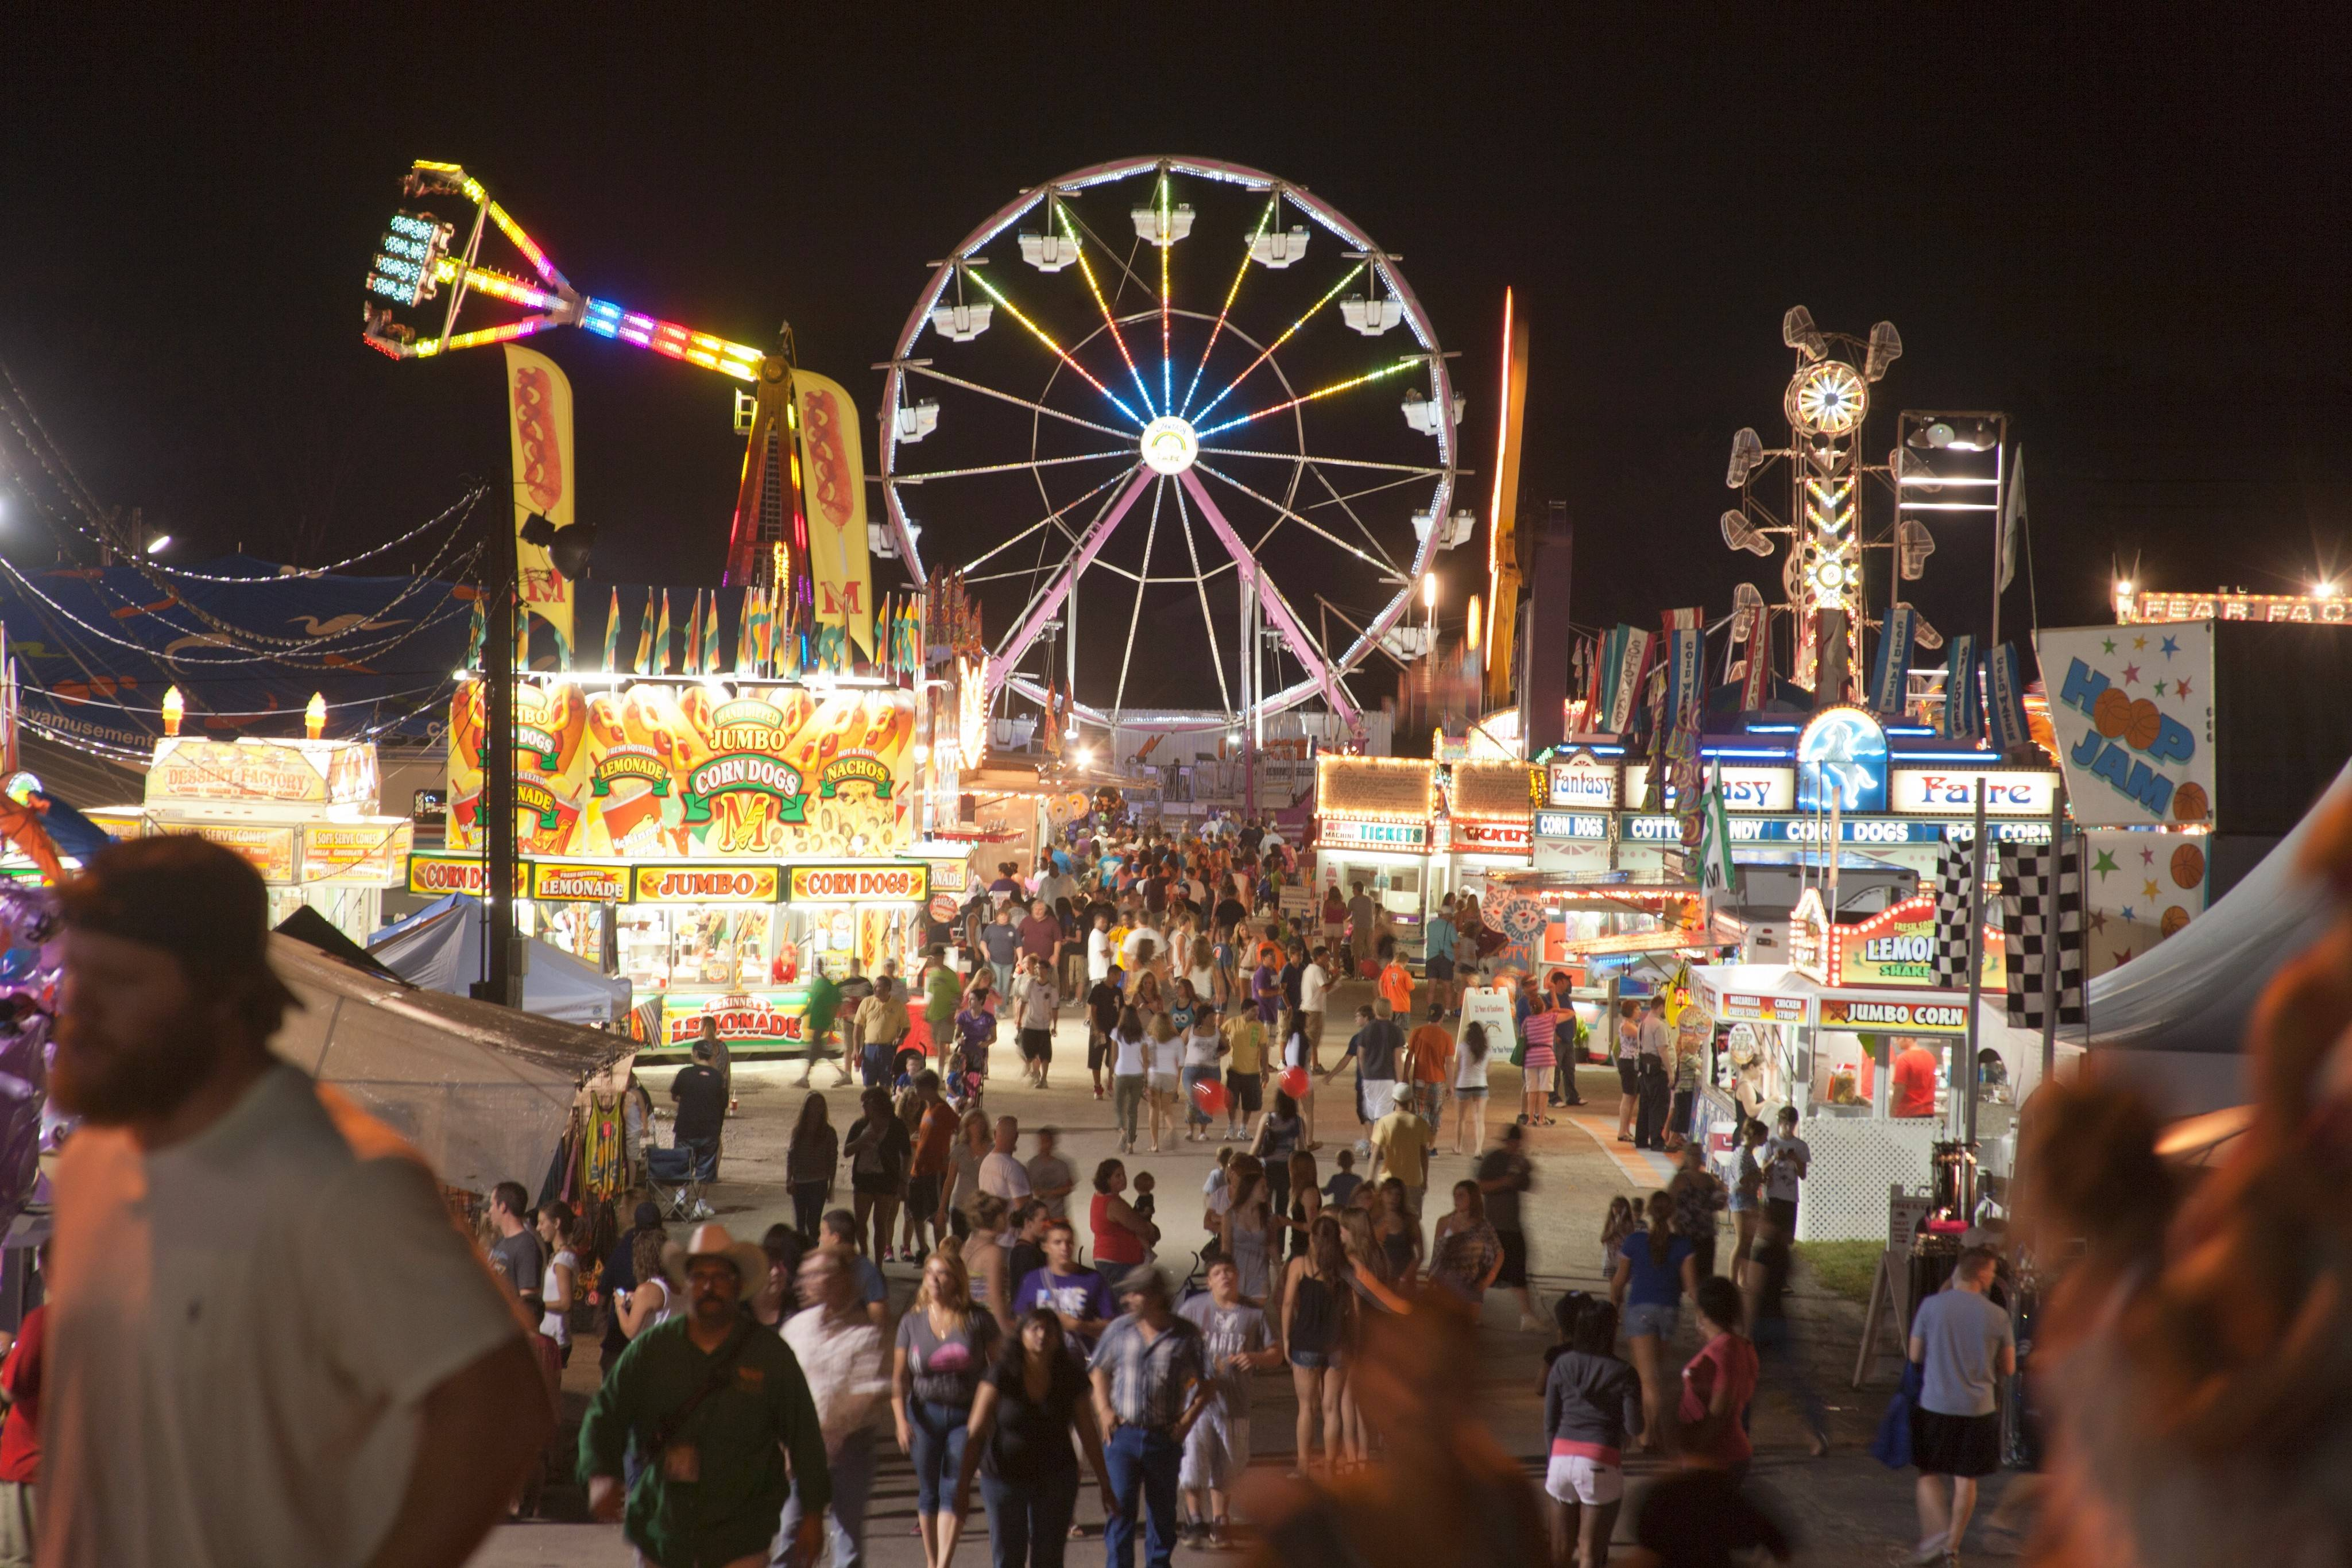 The fun goes on after dark at the DuPage County Fair.